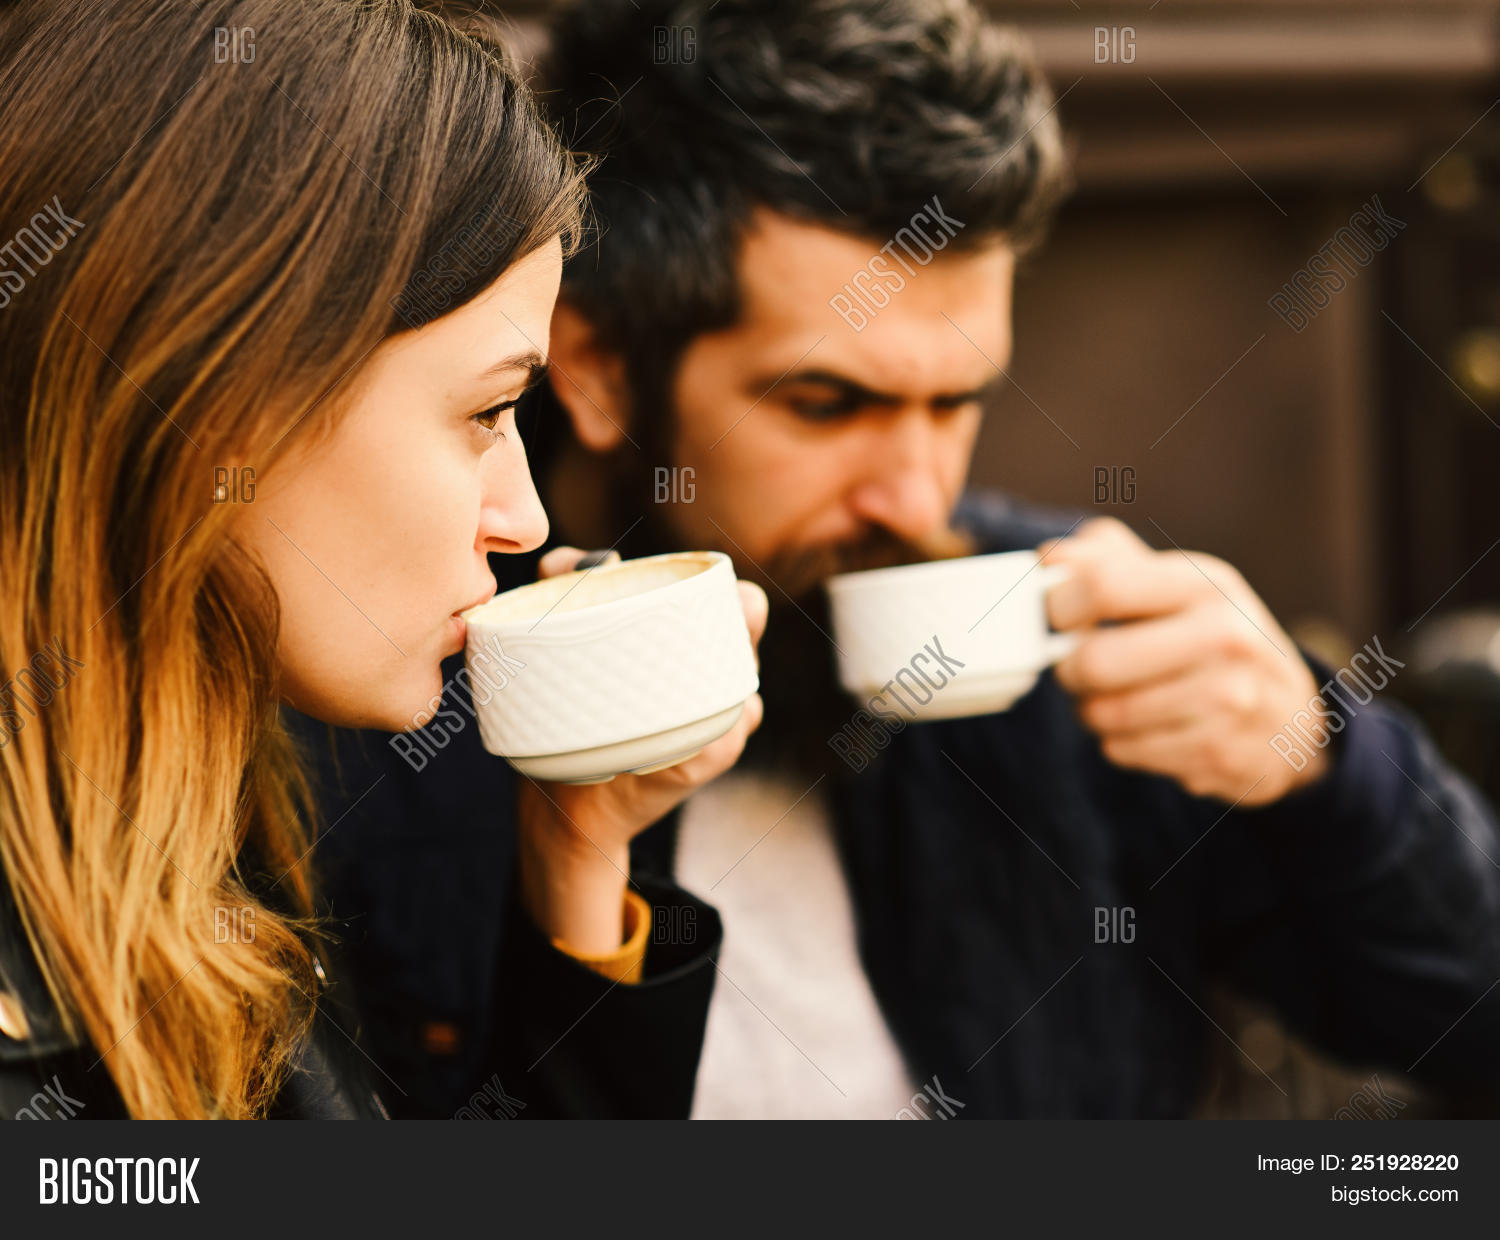 dating a guy who drinks